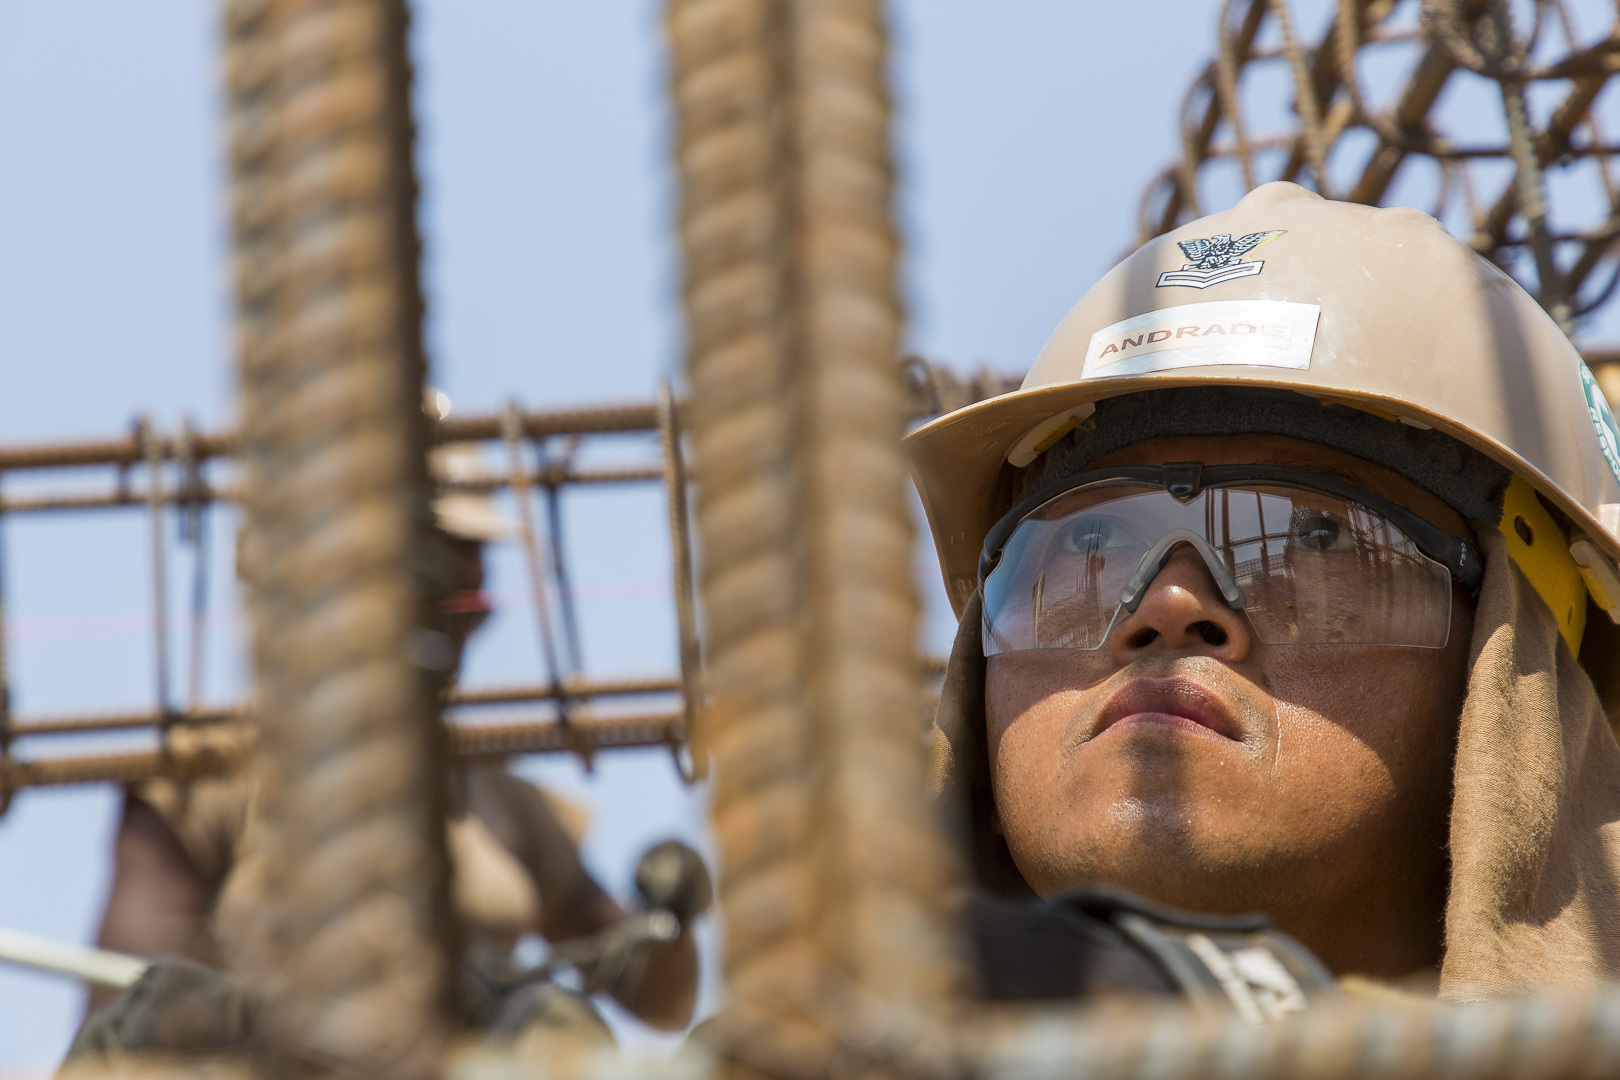 U.S. Navy Builder 2nd Class Gildardo Andrade, a Seabee assigned to Naval Mobile Construction Battalion 1, Detachment-Horn of Africa (NMCB 1, Det-HOA), observes rebar placement for new living quarters at the medical construction site in Ali Oune, Djibouti, Sept. 19, 2018. Seabees with NMCB 1, Det-HOA are building a medical facility in Ali Oune in support of the Ministry of Health for Djibouti. (U.S. Air National Guard photo by Master Sgt. Andrew Sinclair)